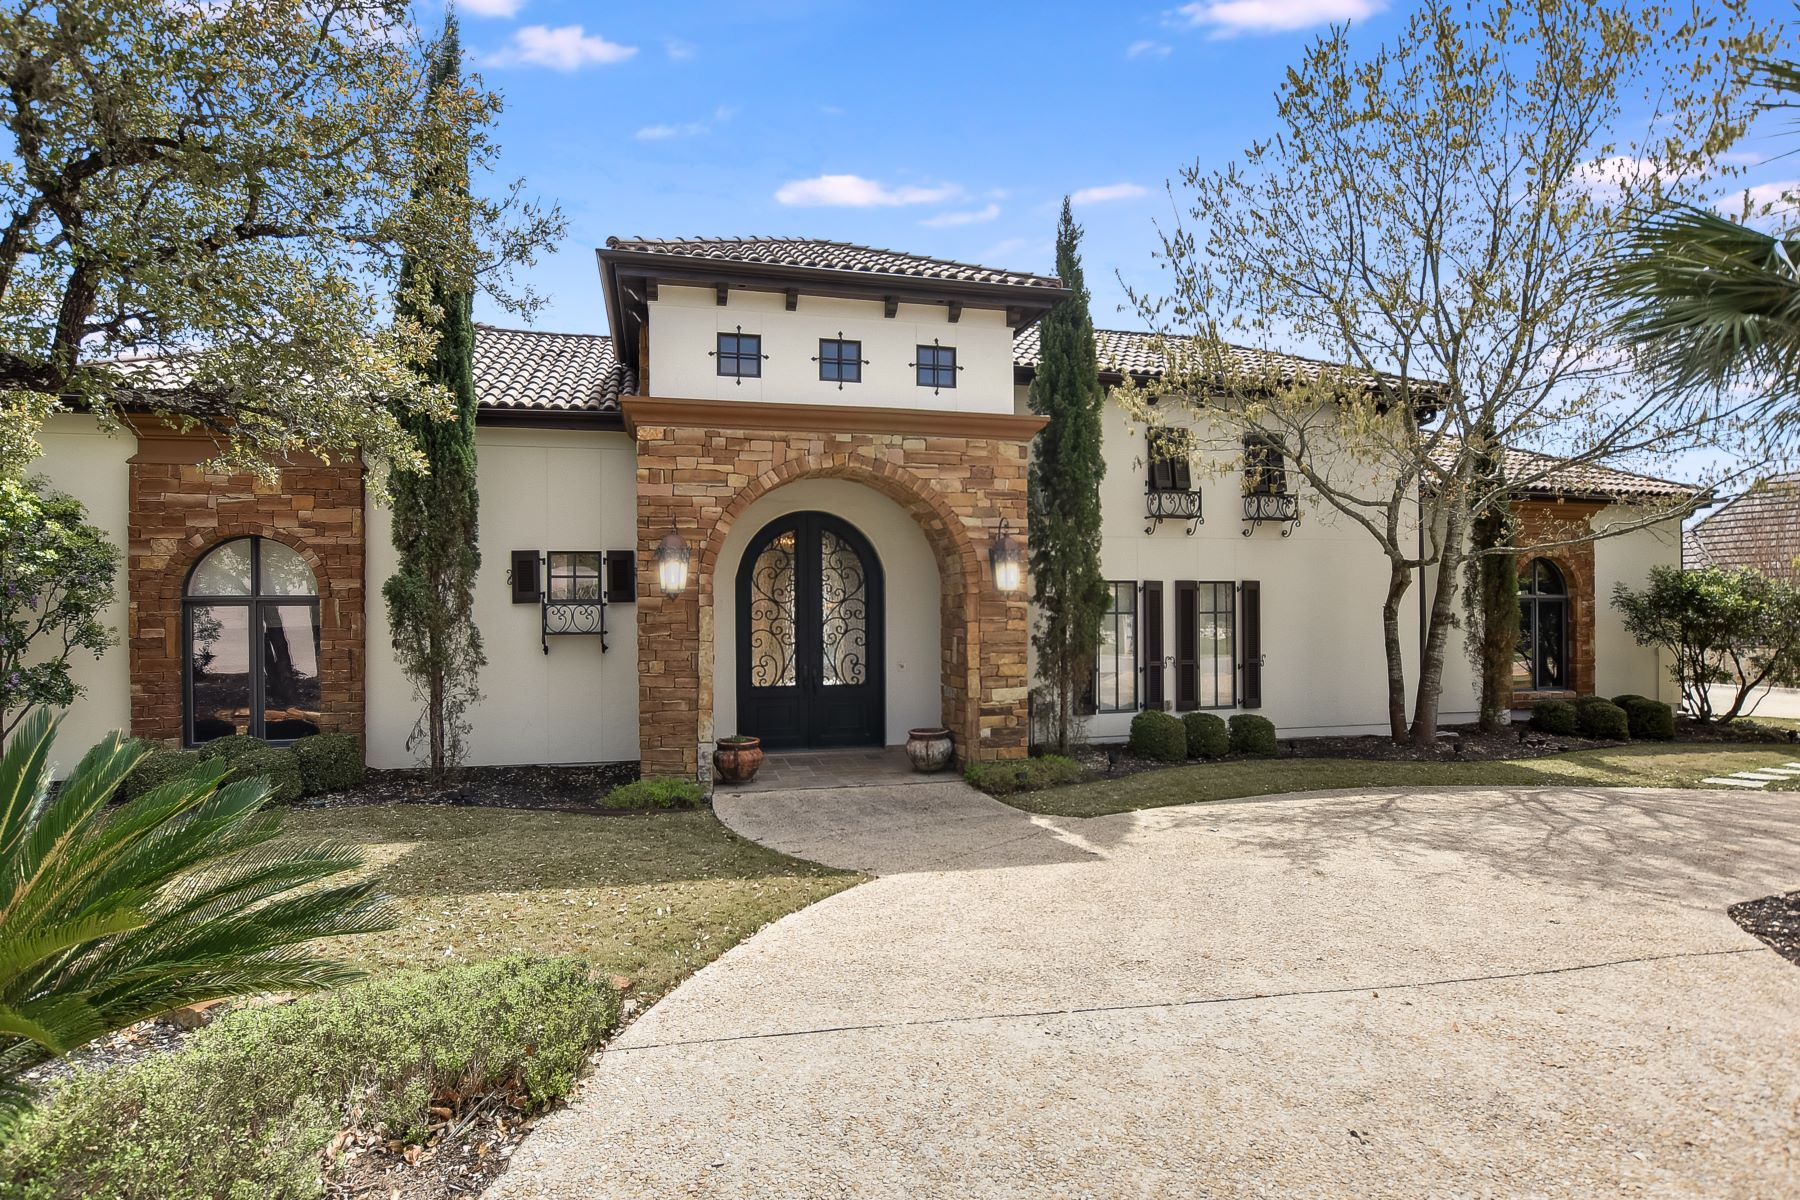 Single Family Home for Sale at Timeless Mediterranean Estate in The Dominion 16 Esquire, San Antonio, Texas, 78257 United States